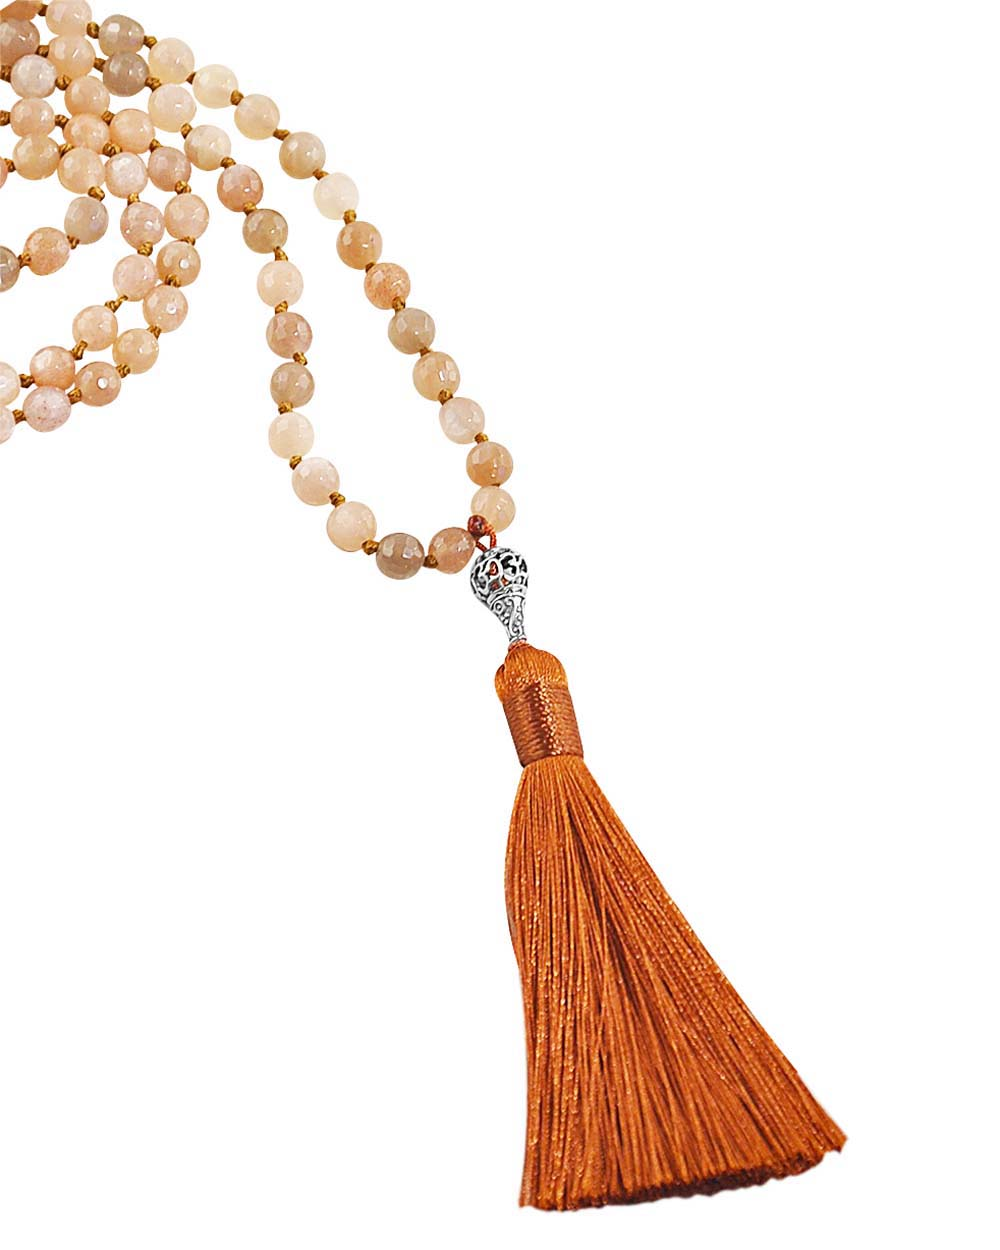 Ether Element Rainbow Moonstone and Peach Moonstone 108 Beads Mala with Silver Om Guru Bead